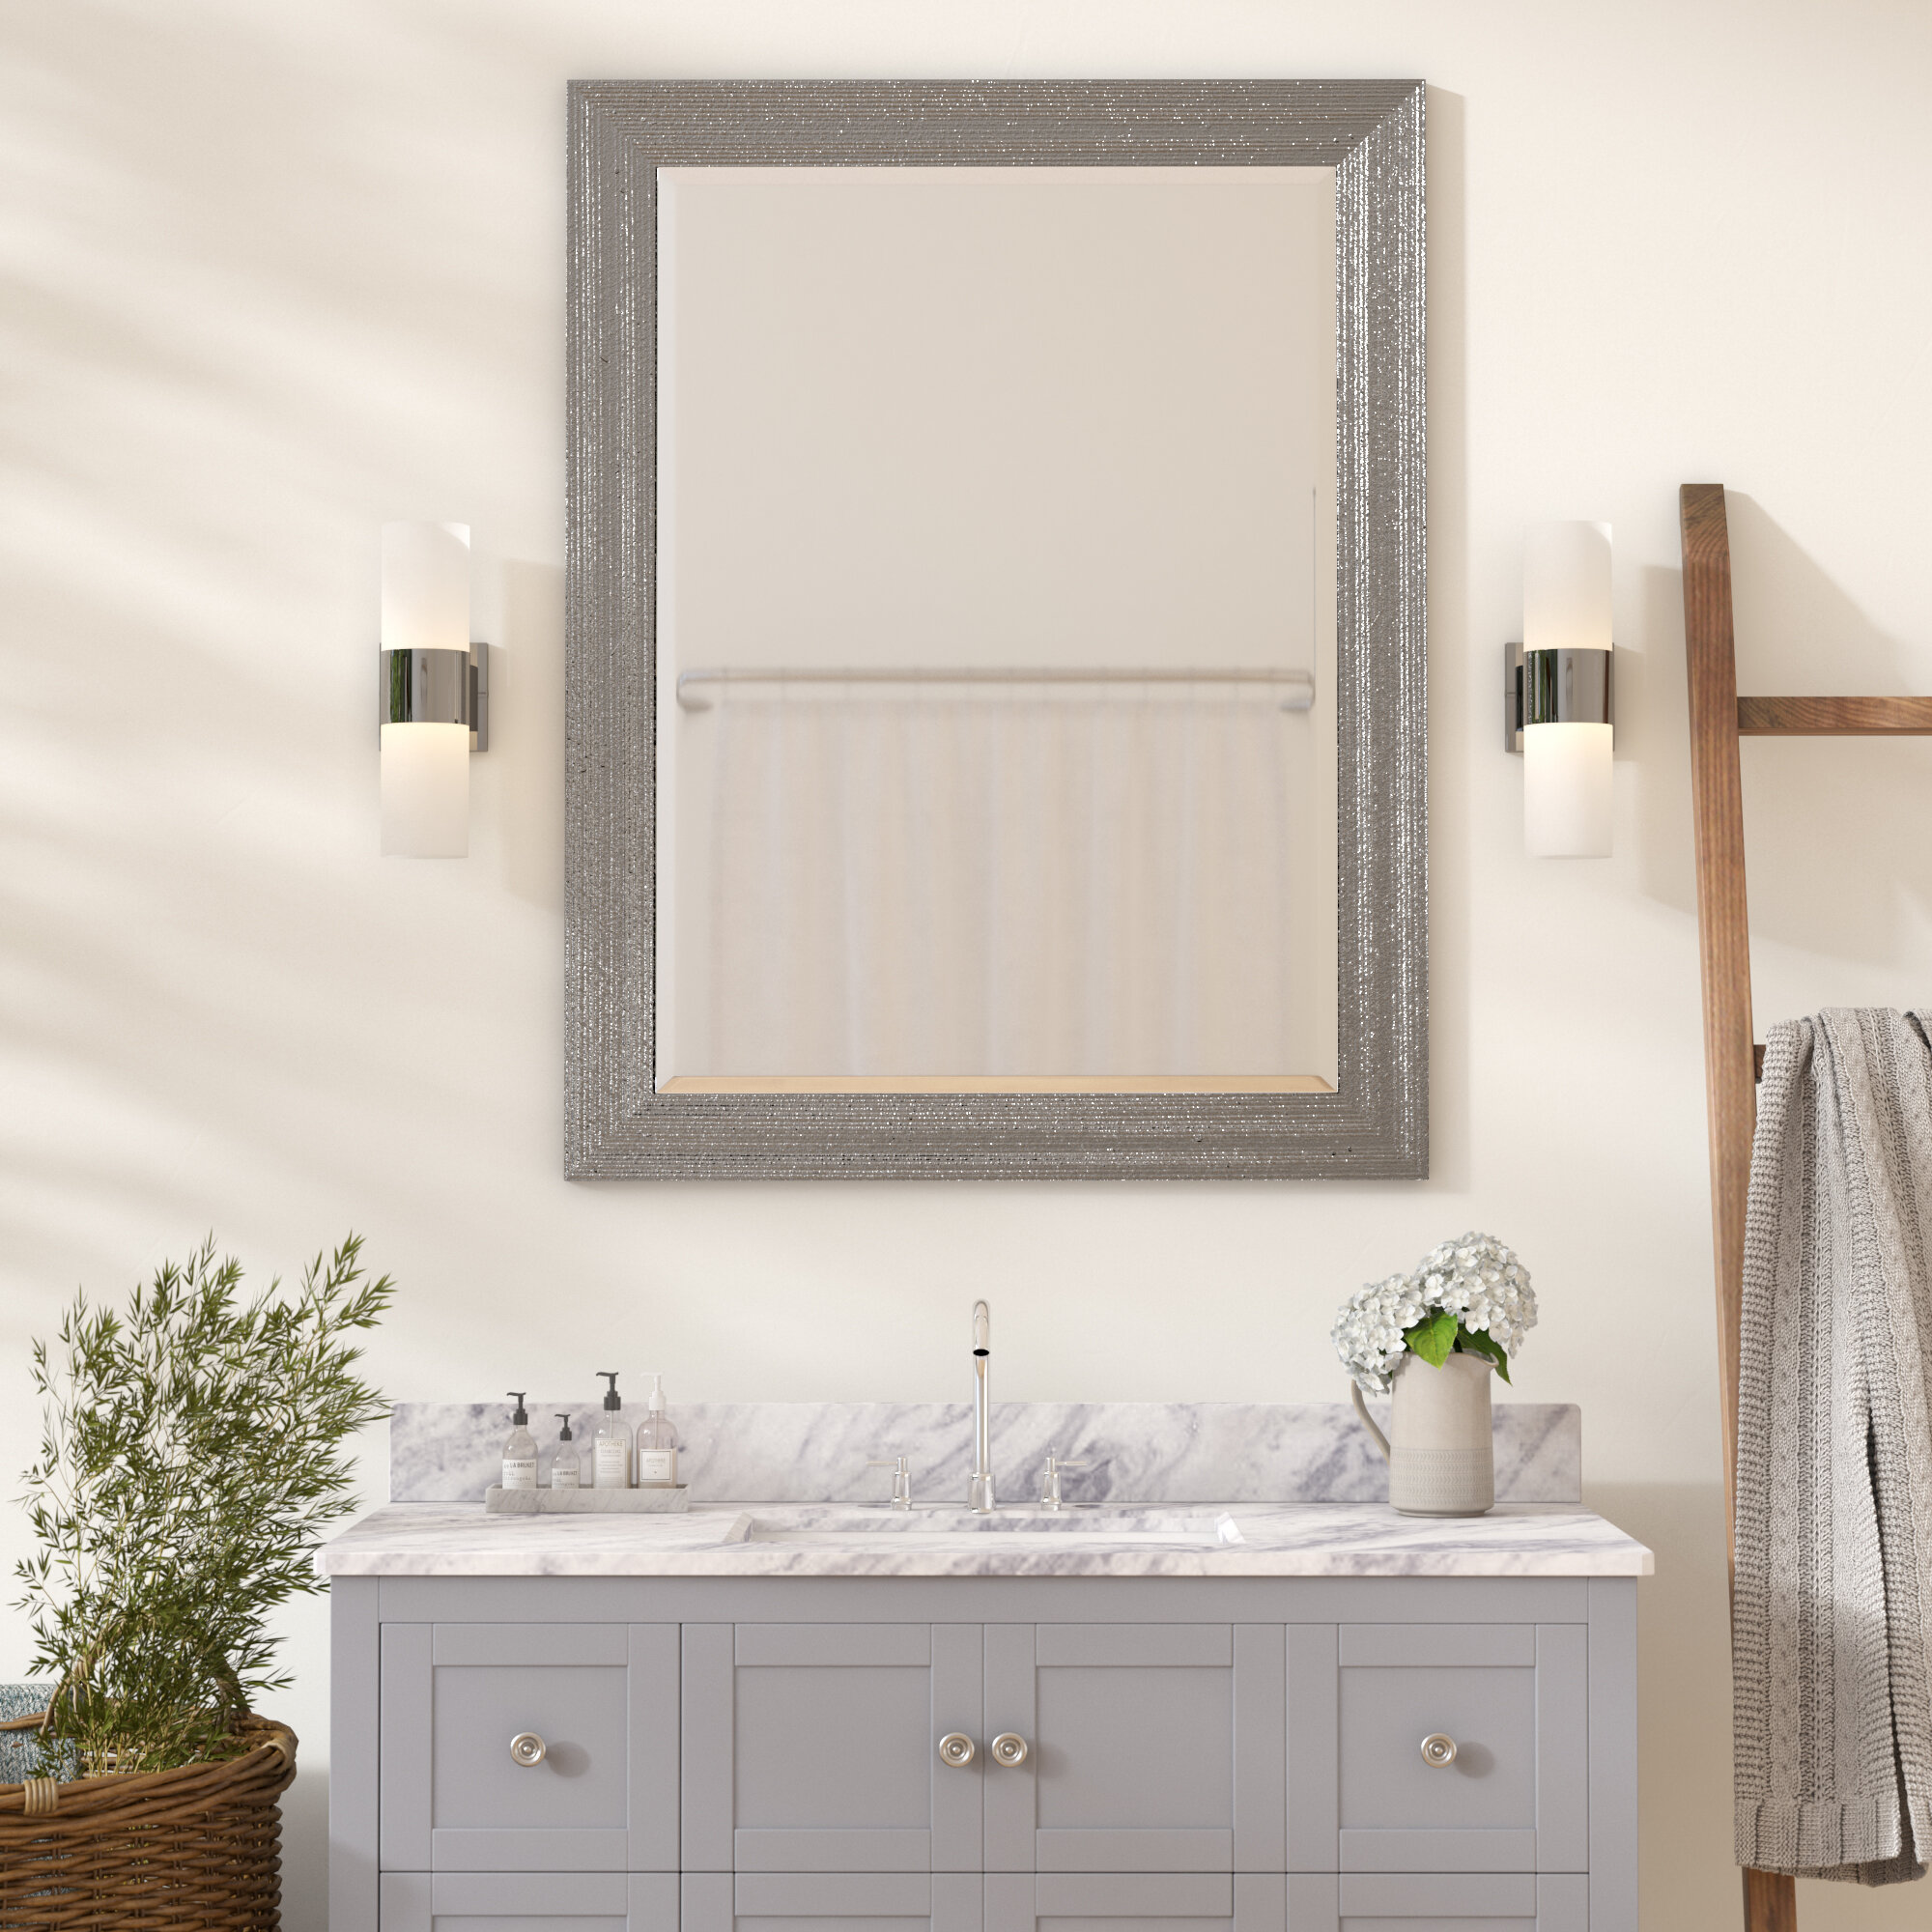 Delicieux Zipcode Design Brynlee Beveled Edge Bathroom/Vanity Wall Mirror U0026 Reviews |  Wayfair